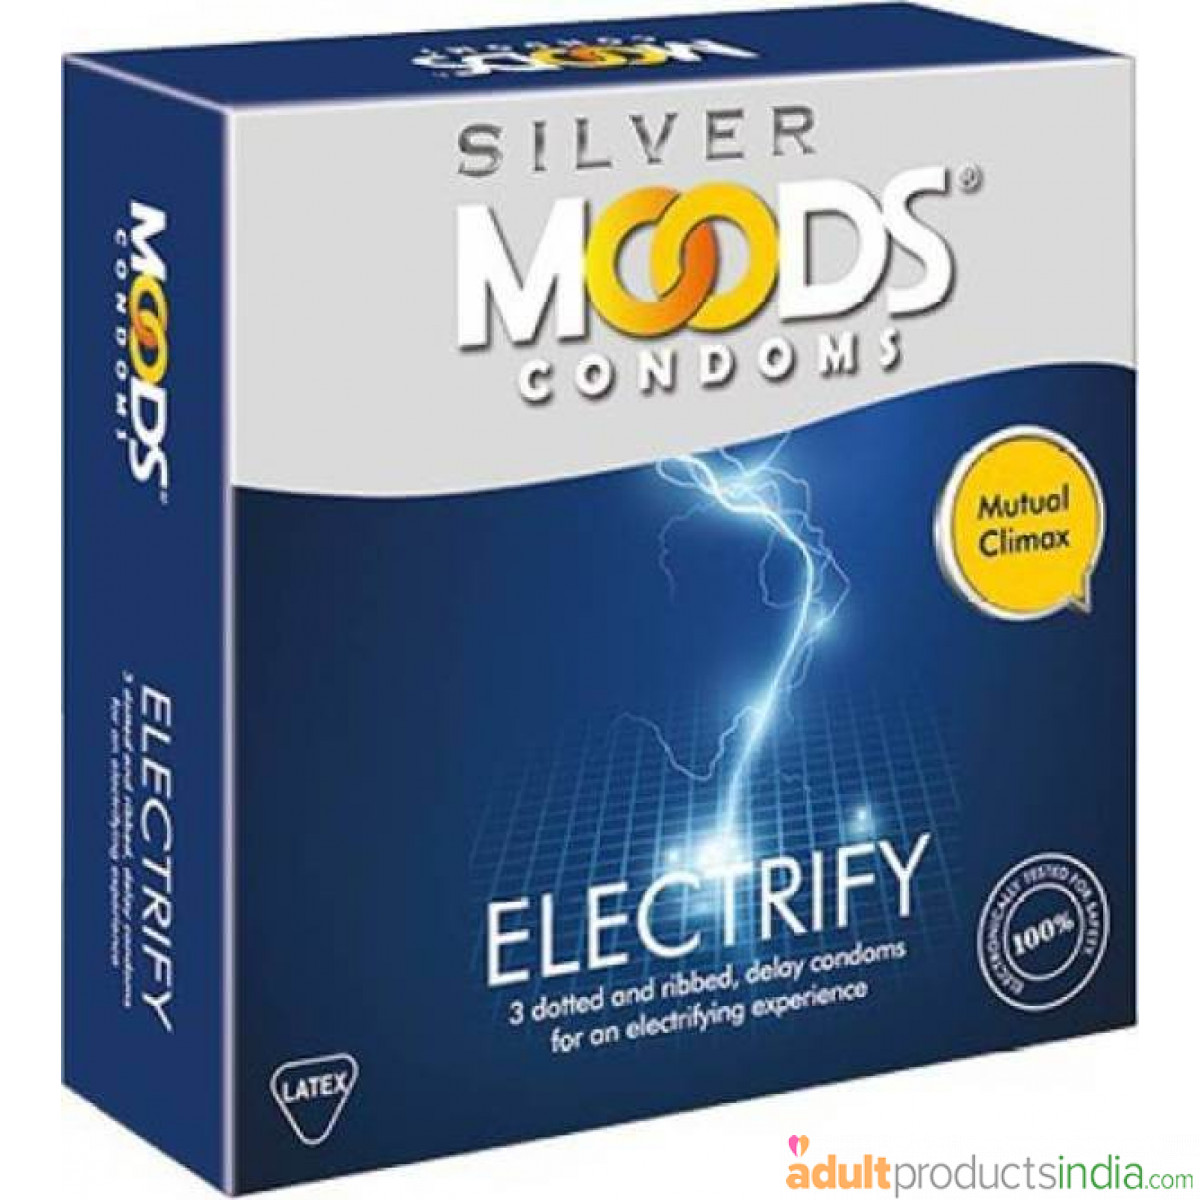 Moods Electrify 3 pack